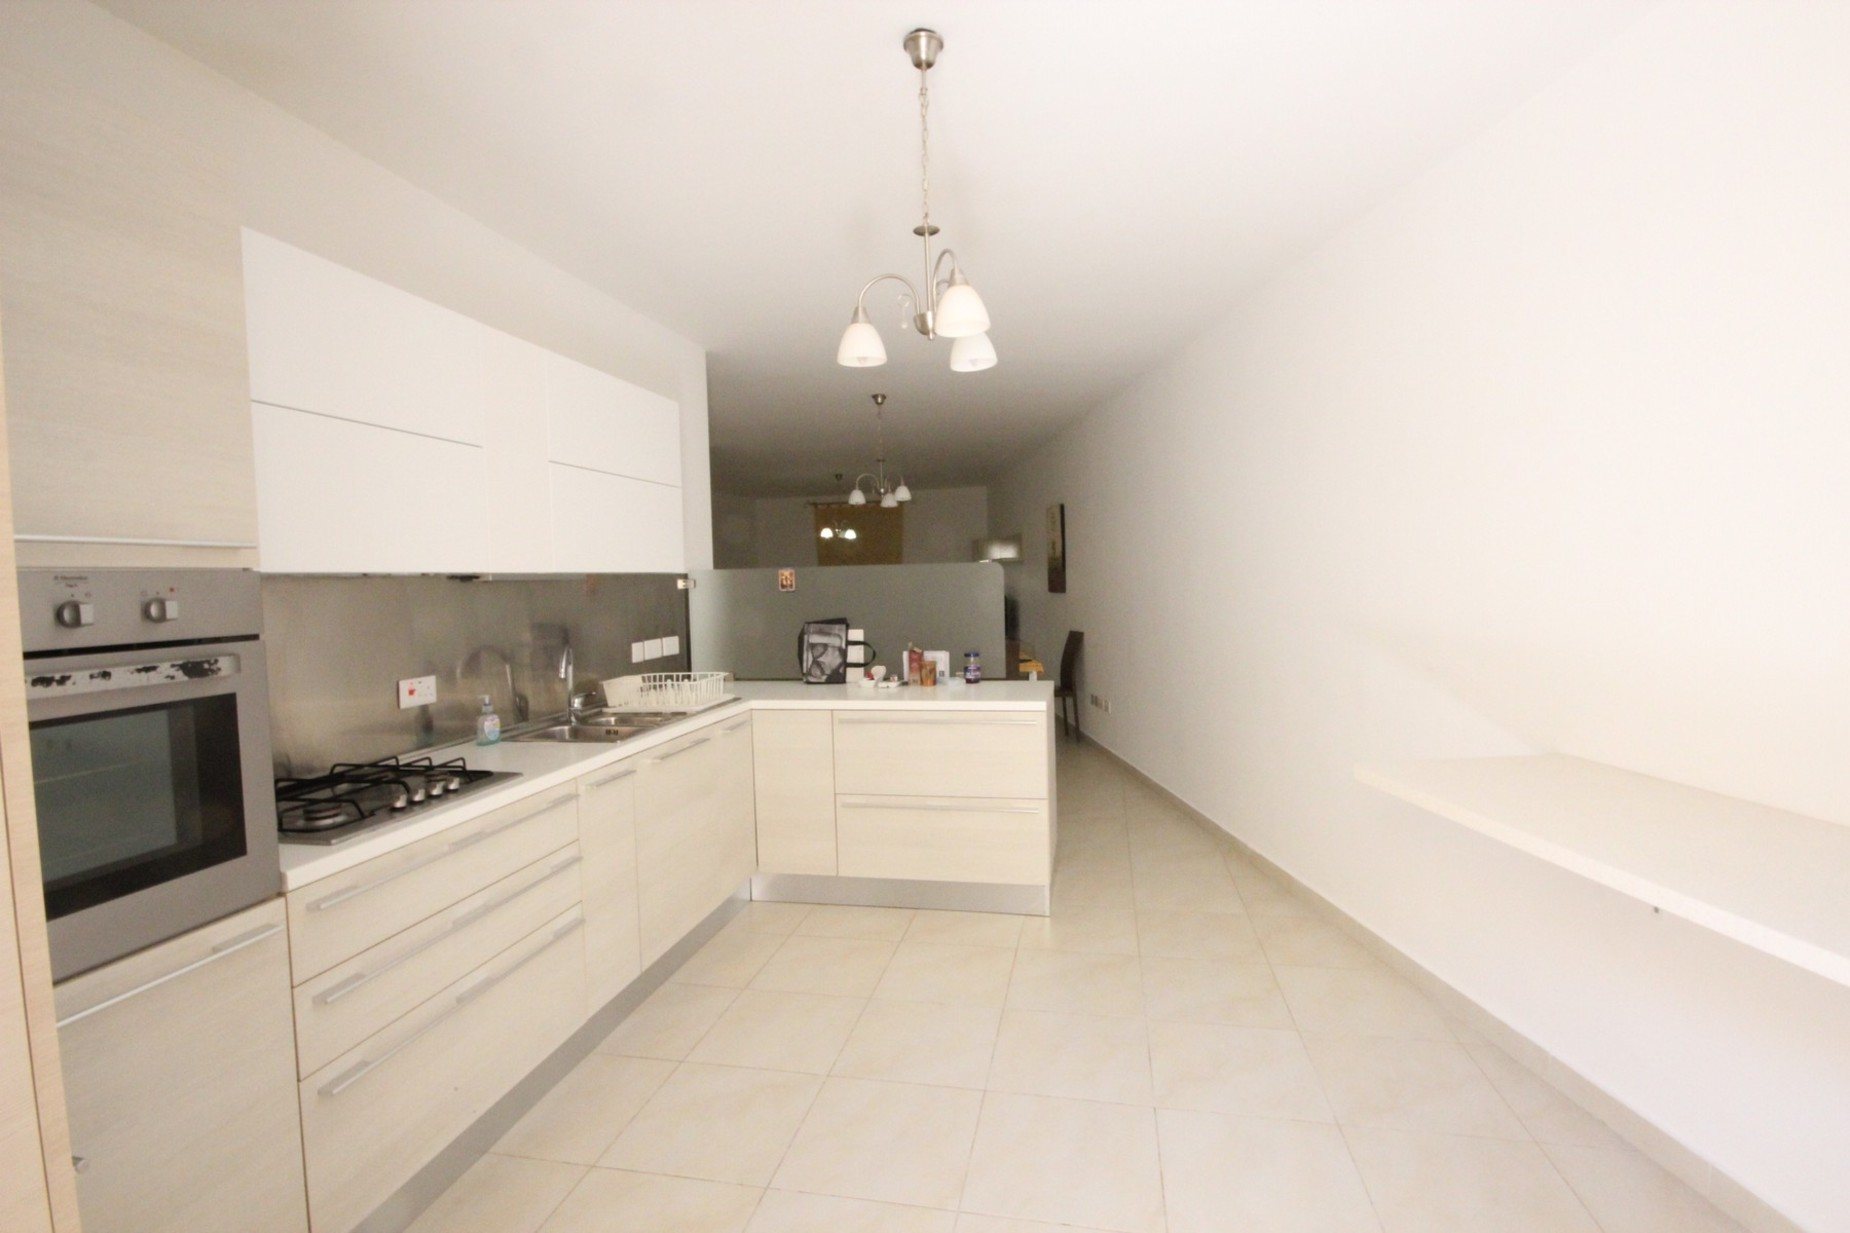 3 bed Maisonette For Rent in Sliema, Sliema - thumb 3